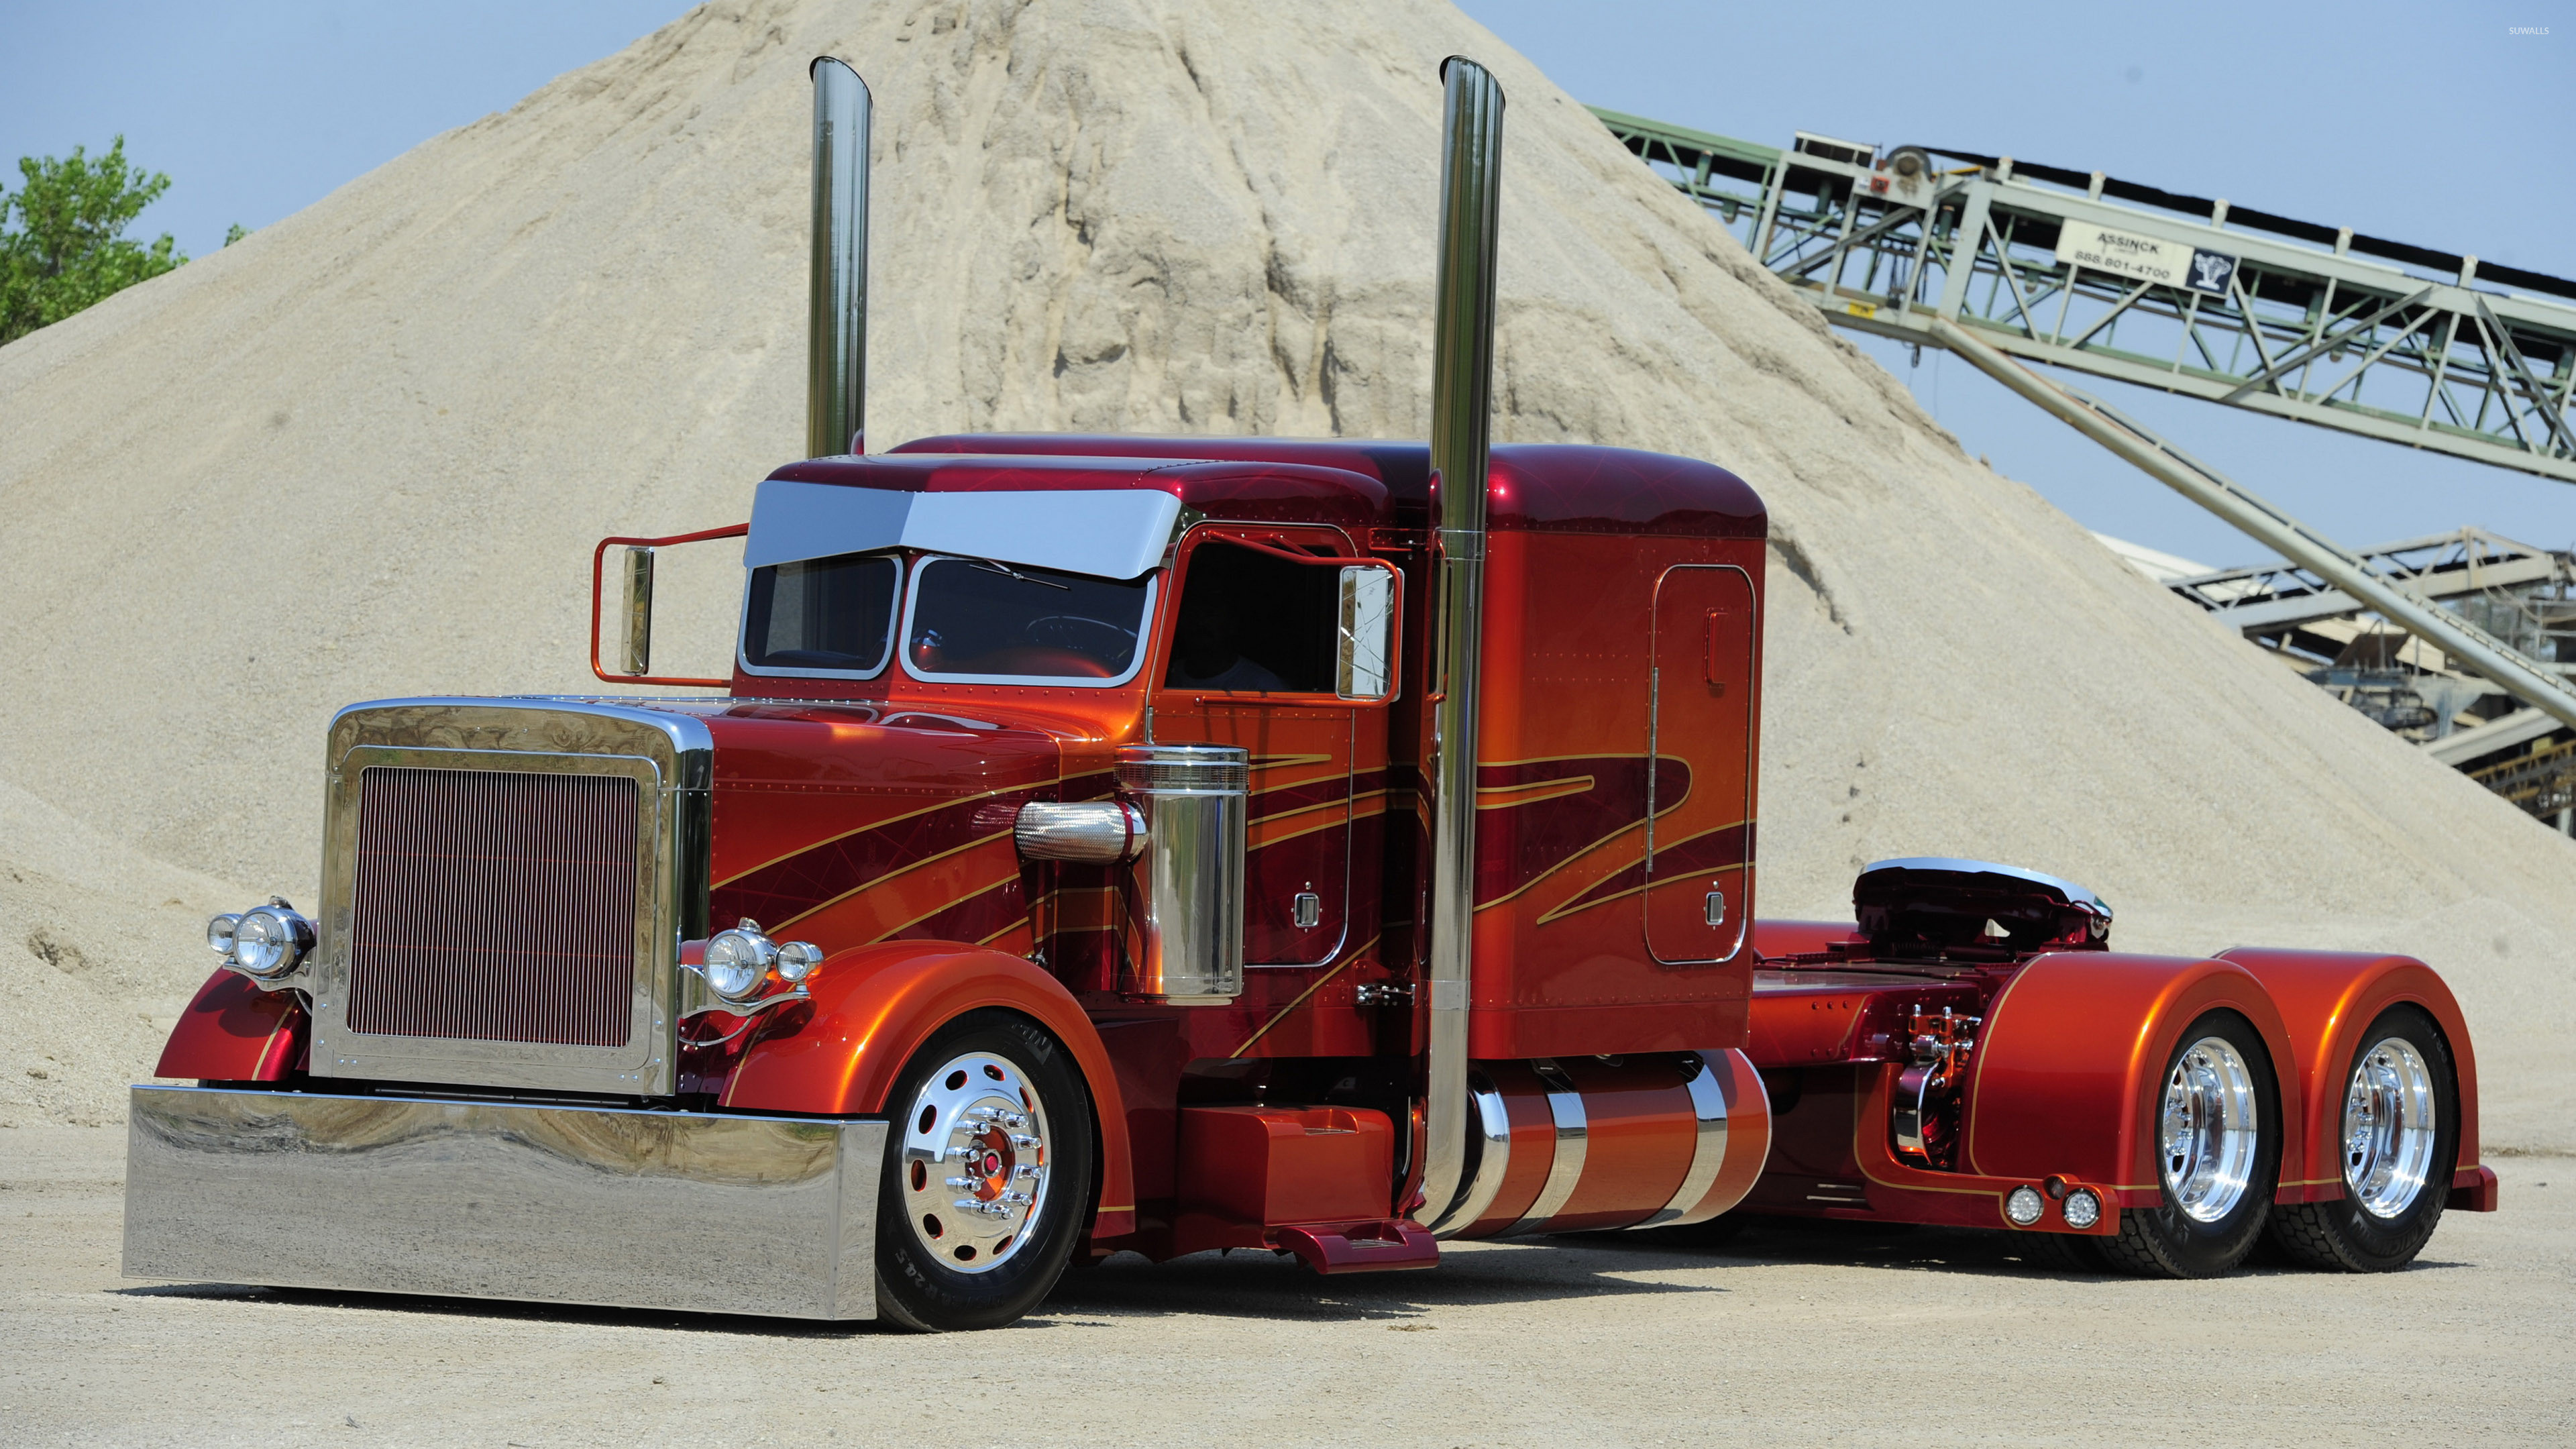 3840x2160 Peterbilt truck [3] wallpaper